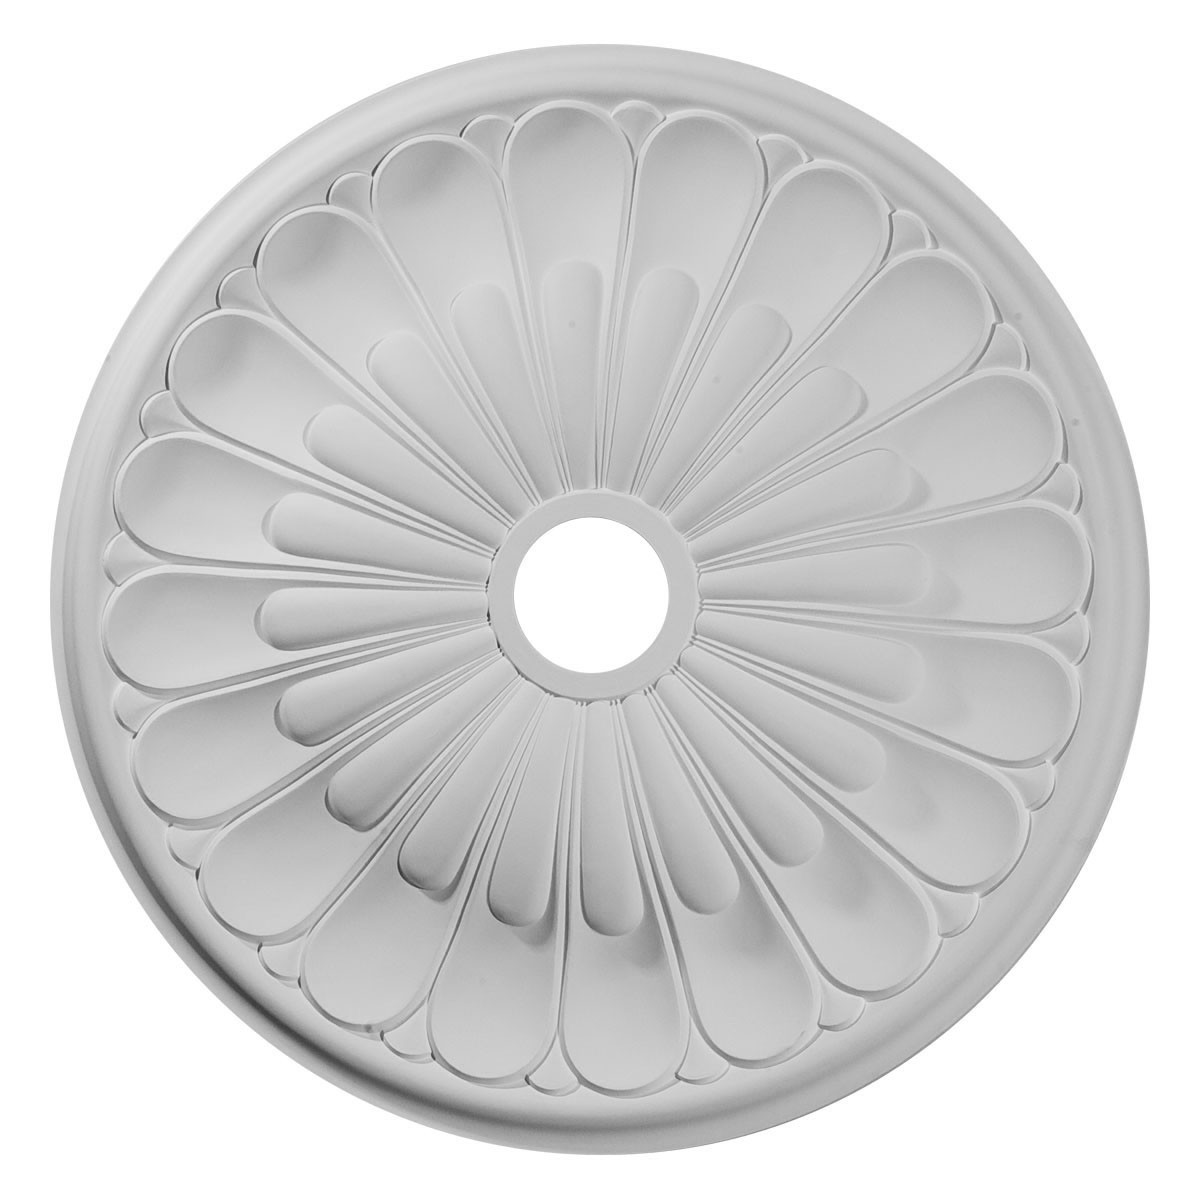 """EM-CM26EL - 26 3/4""""OD x 3 5/8""""ID x 1 3/8""""P Elsinore Ceiling Medallion (Fits Canopies up to 3 5/8"""")"""